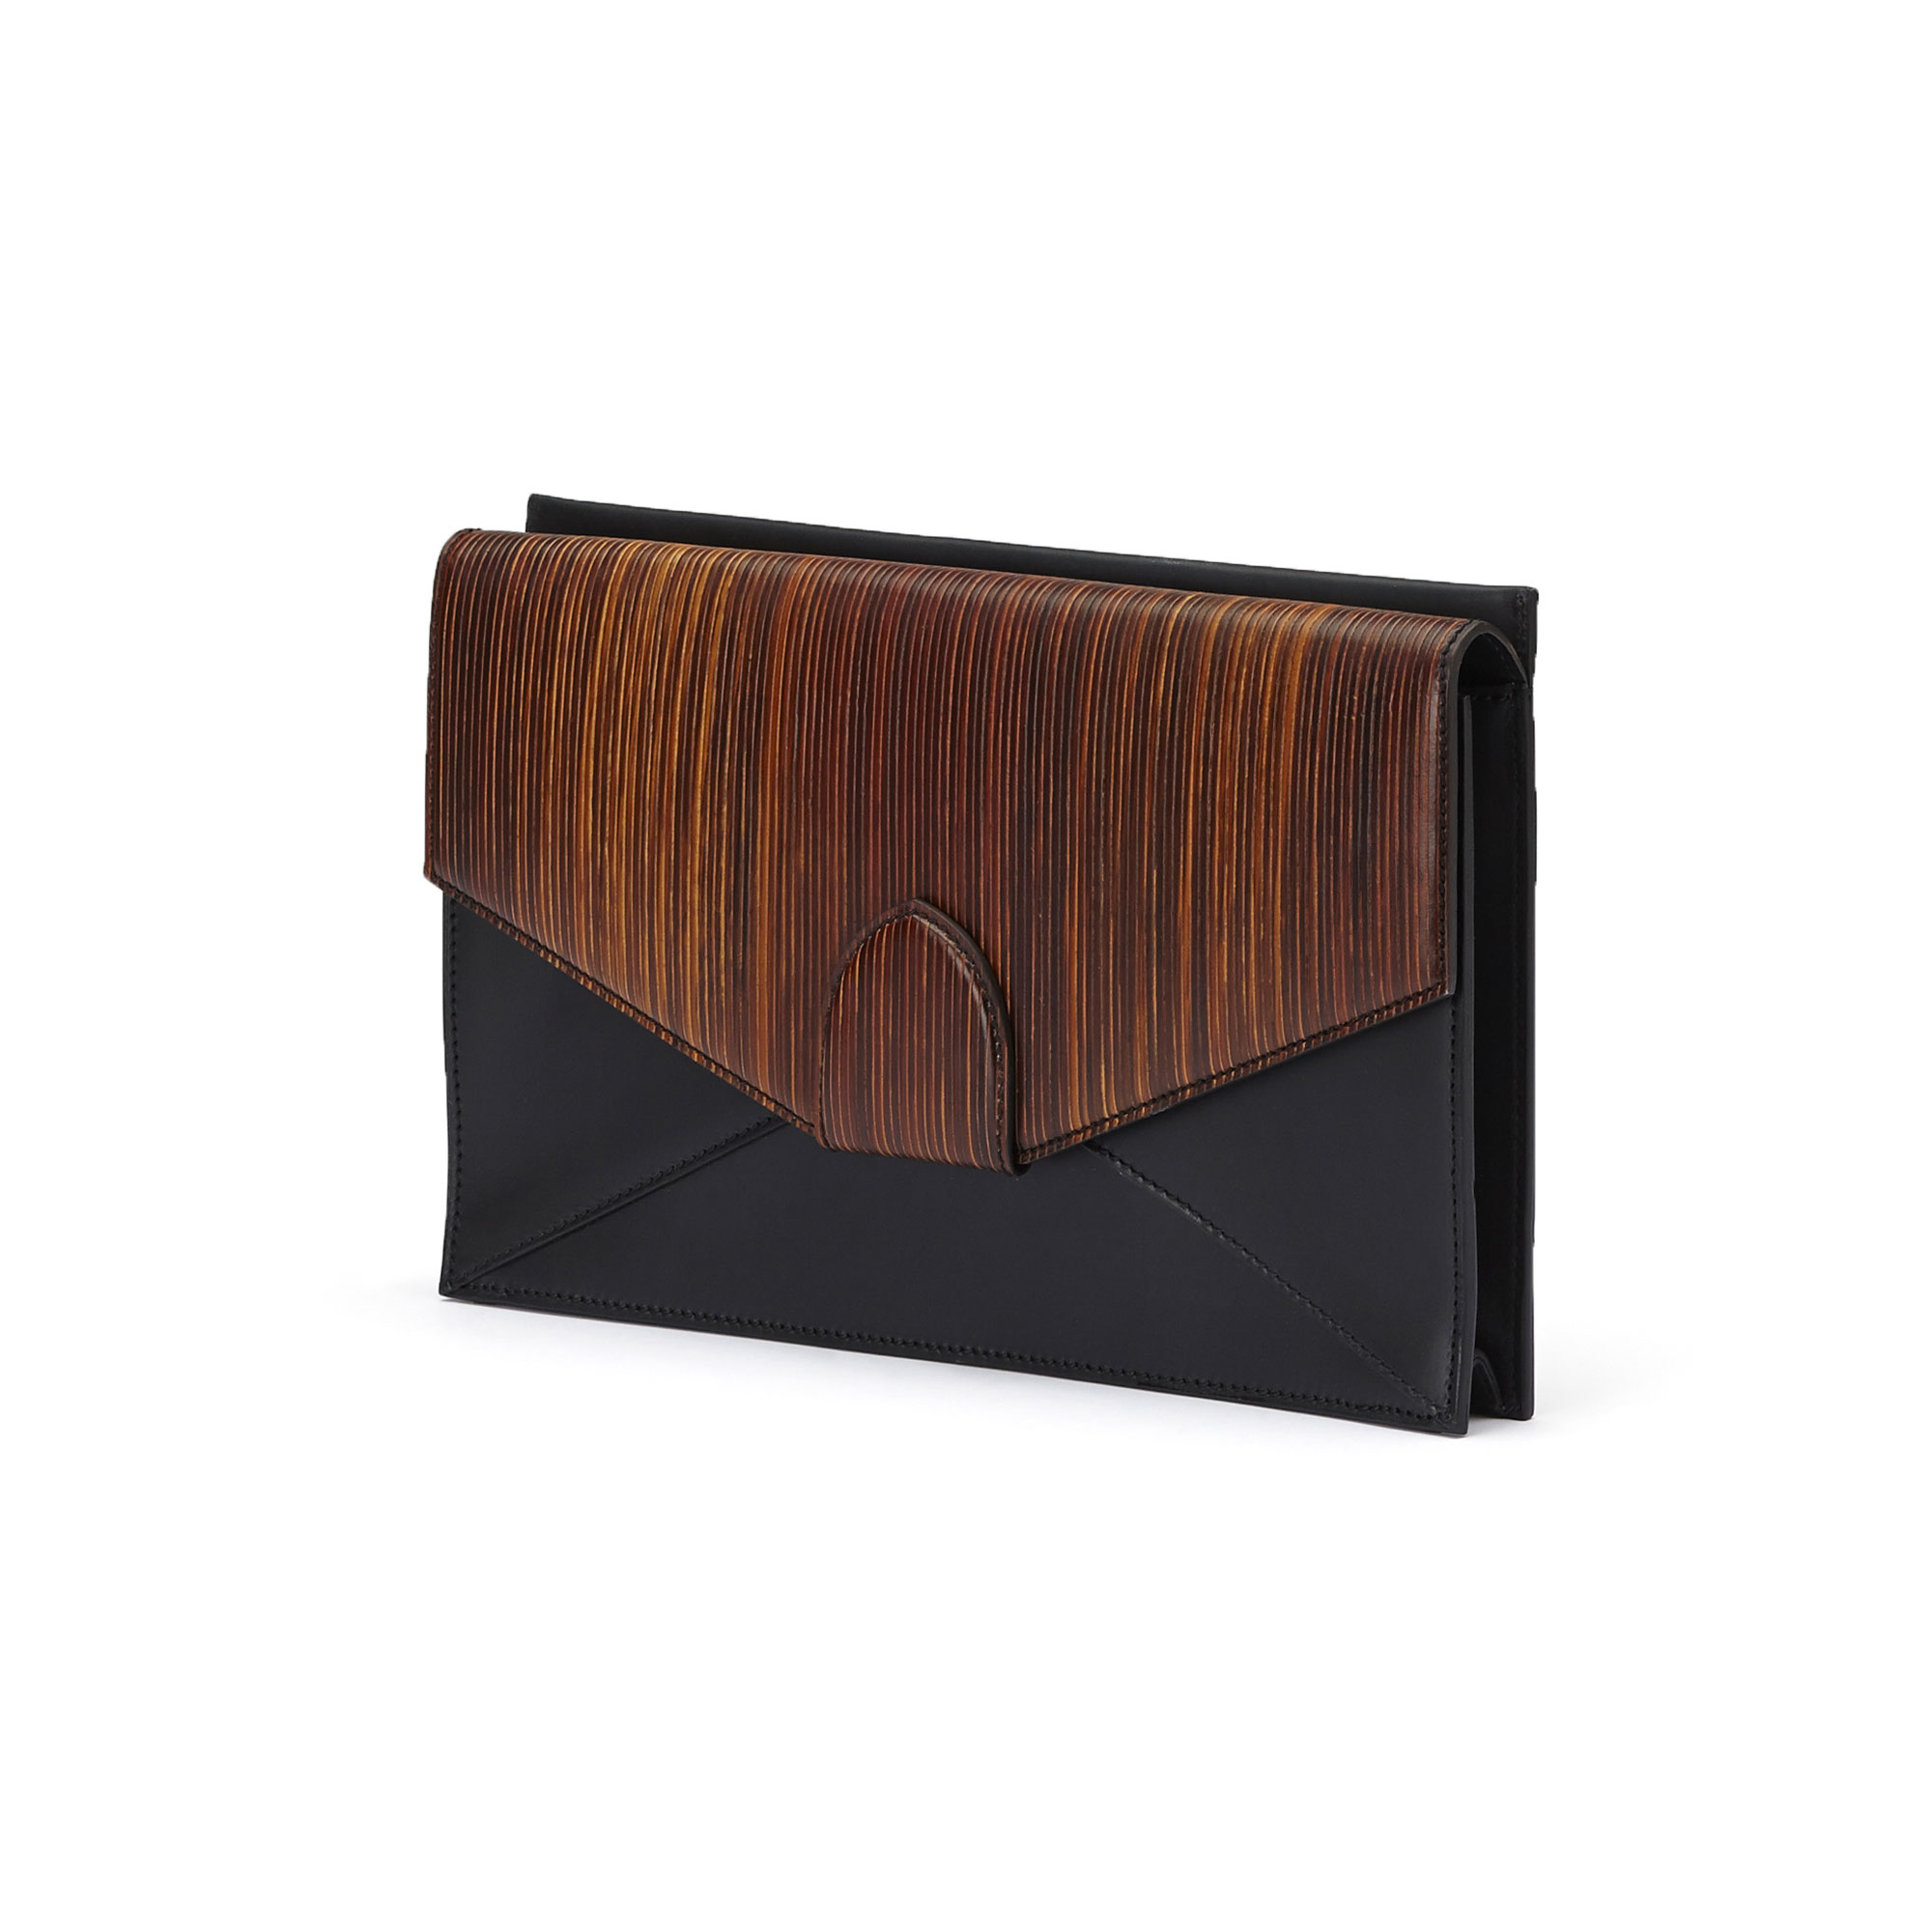 The black and brown wood leather, french calf Dafne Clutch bag by Bertoni 1949 02